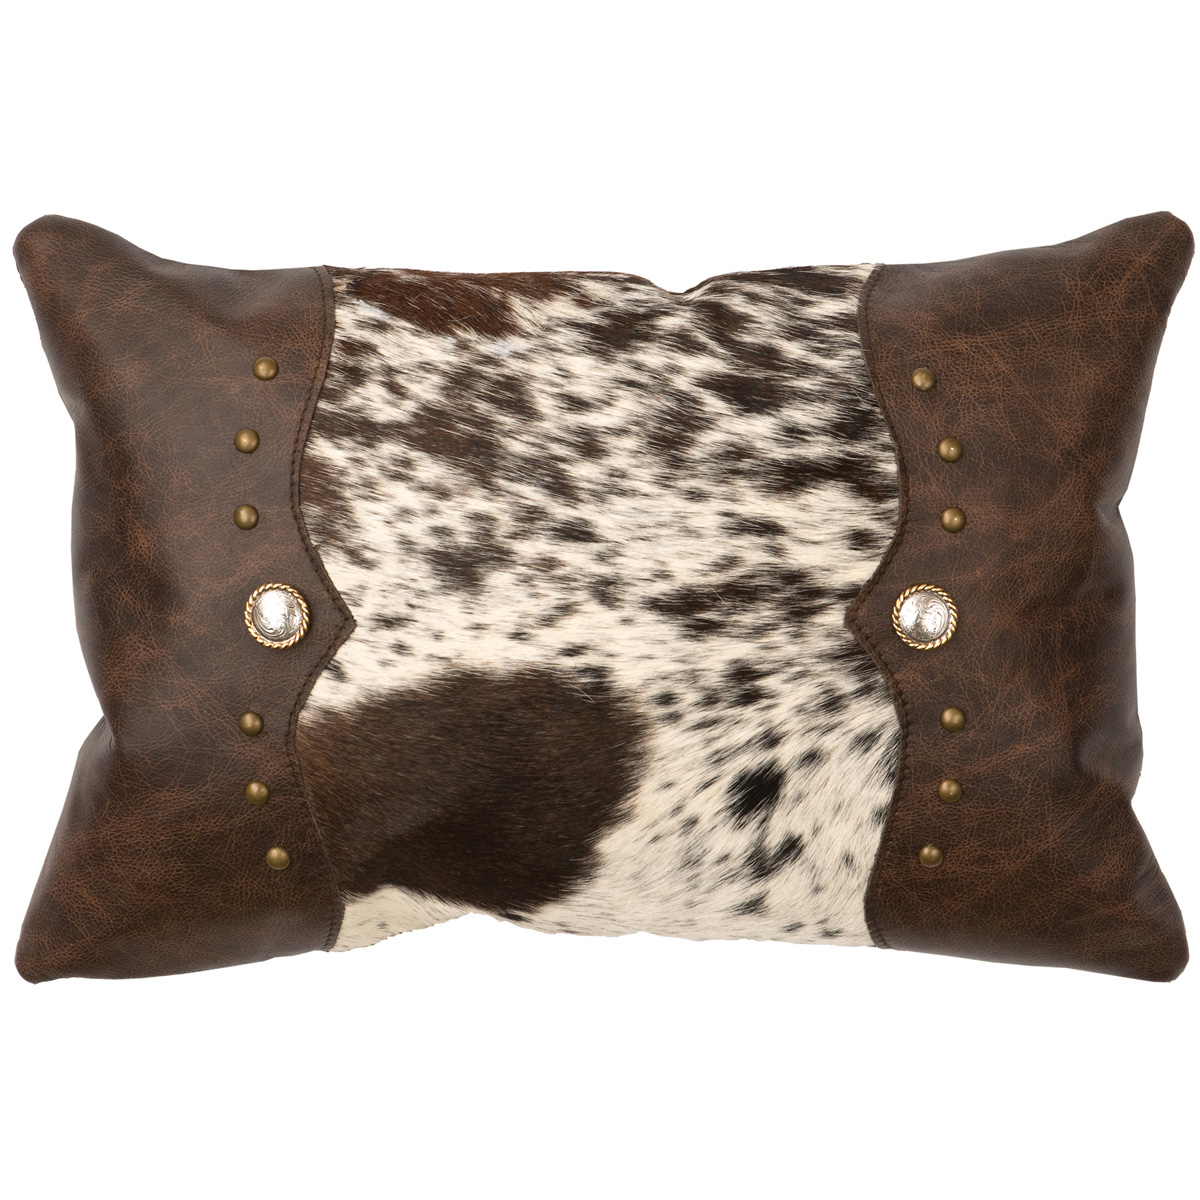 Brown Speckled Cowhide & Leather Pillow - Leather Back